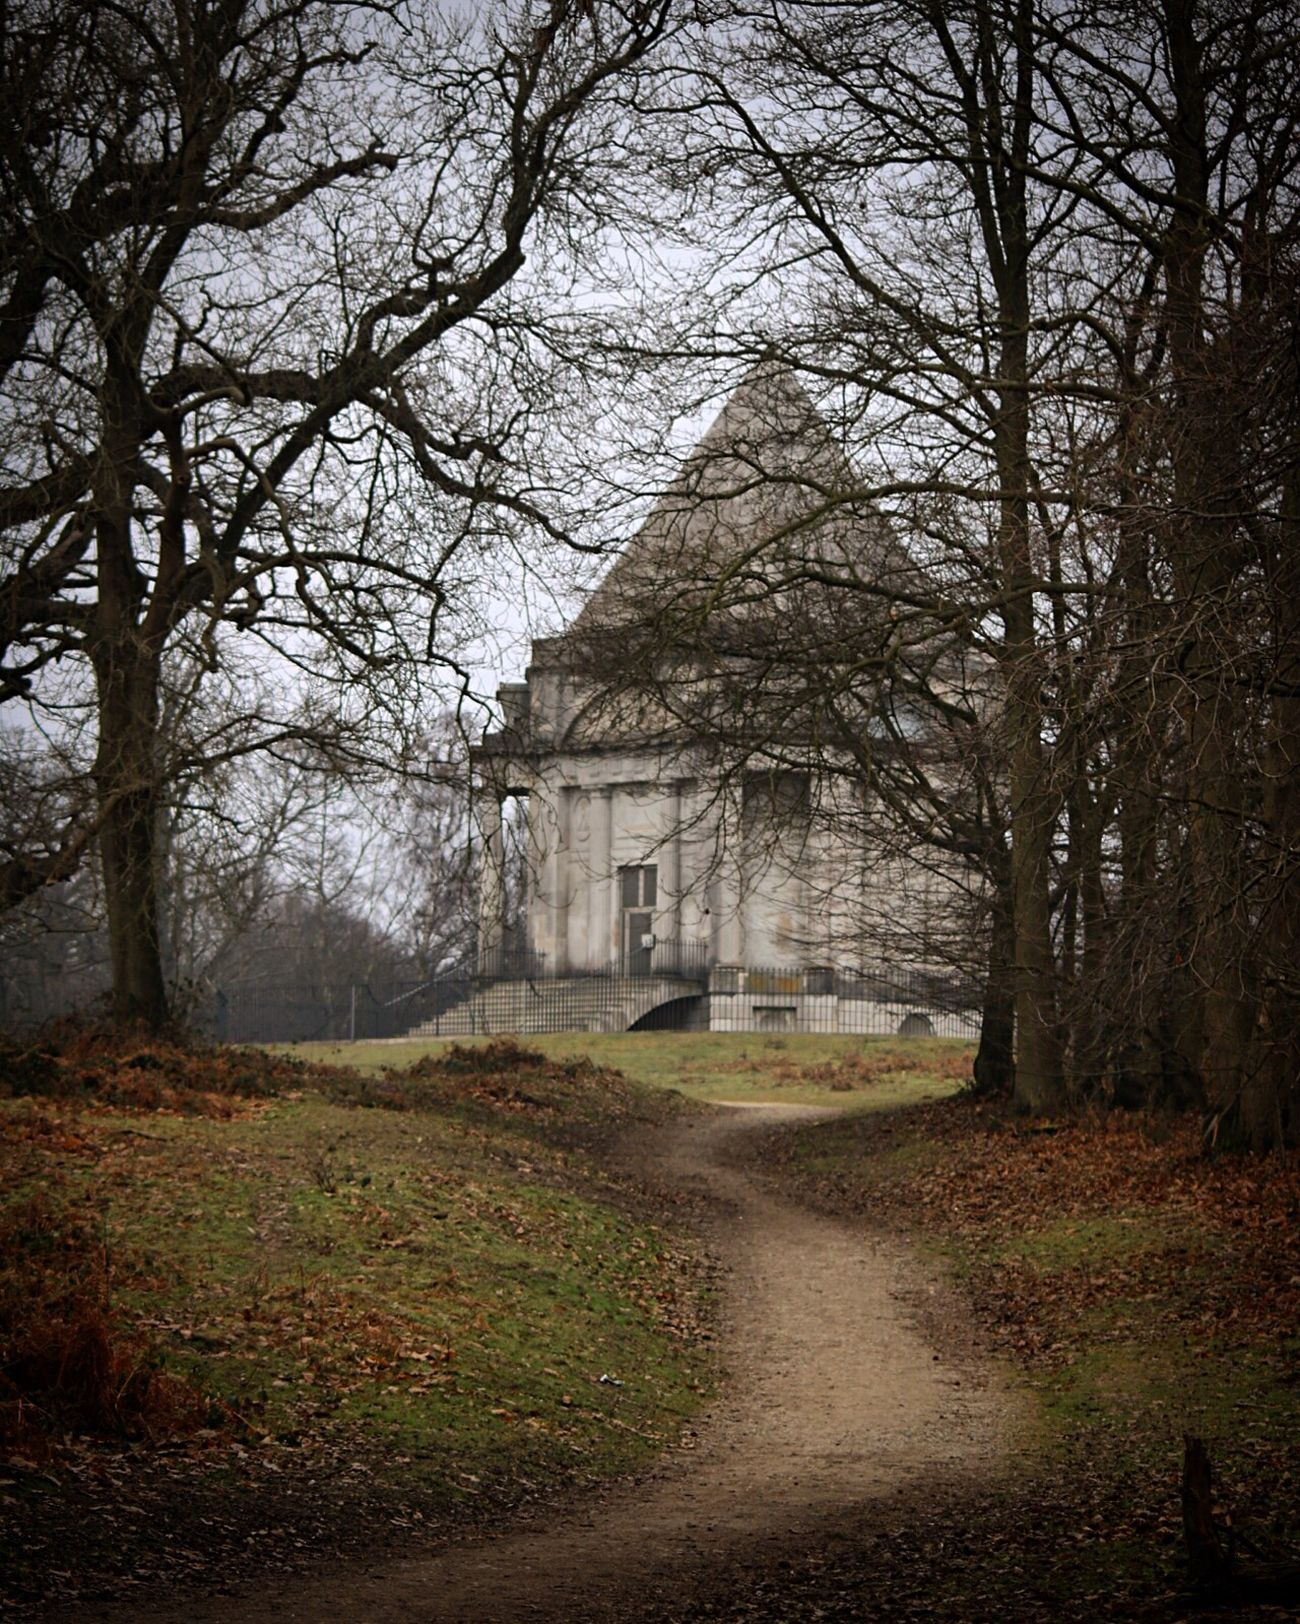 Tree Travel Destinations Architecture No People Nature Building Exterior Outdoors Beauty In Nature Day Sky Wood Woods WoodLand Cobham Mausoleum Nature